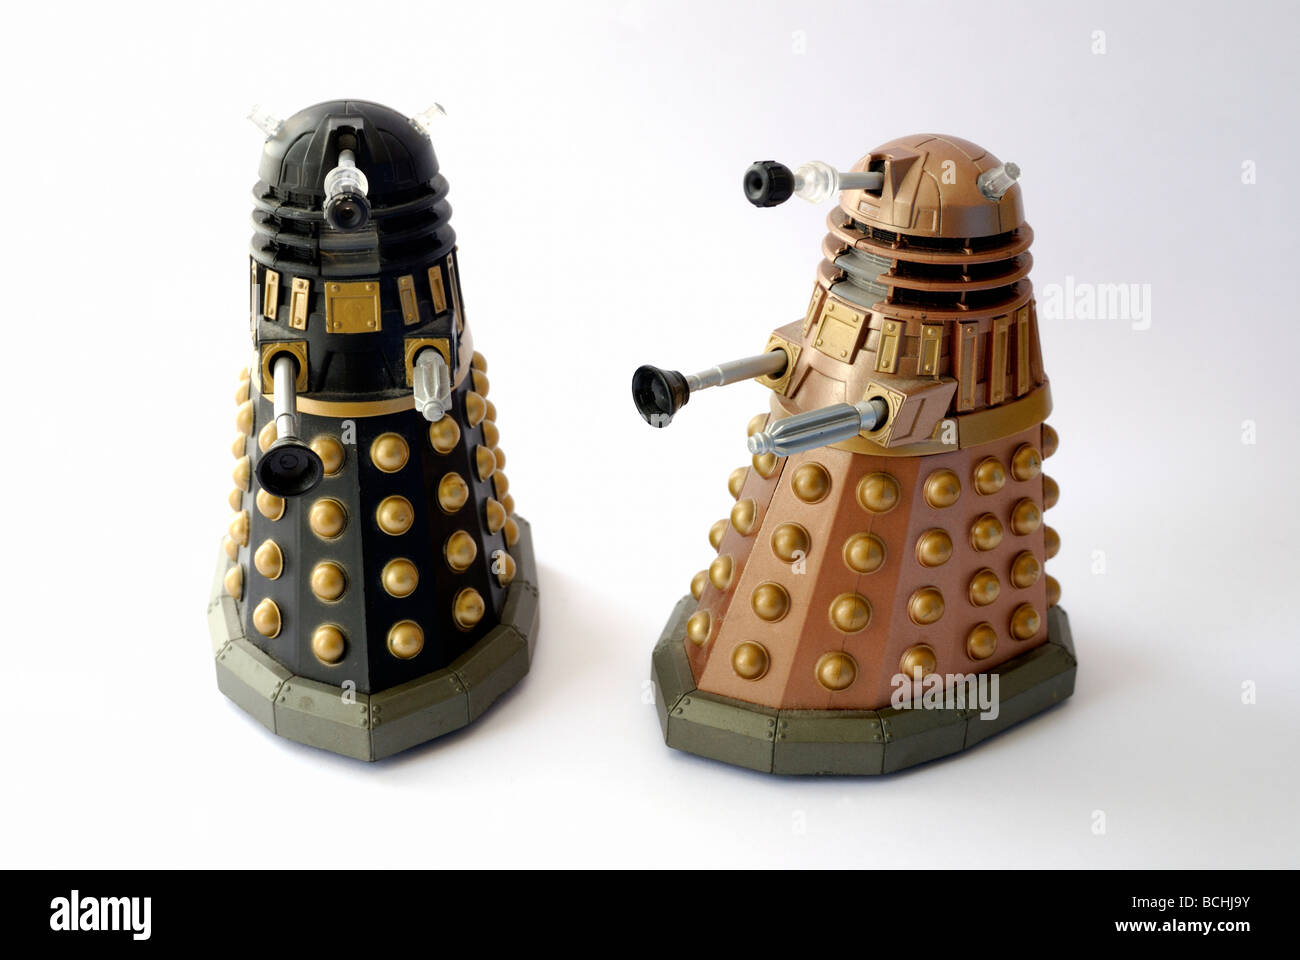 Two Dr Who Dalek toys - Stock Image